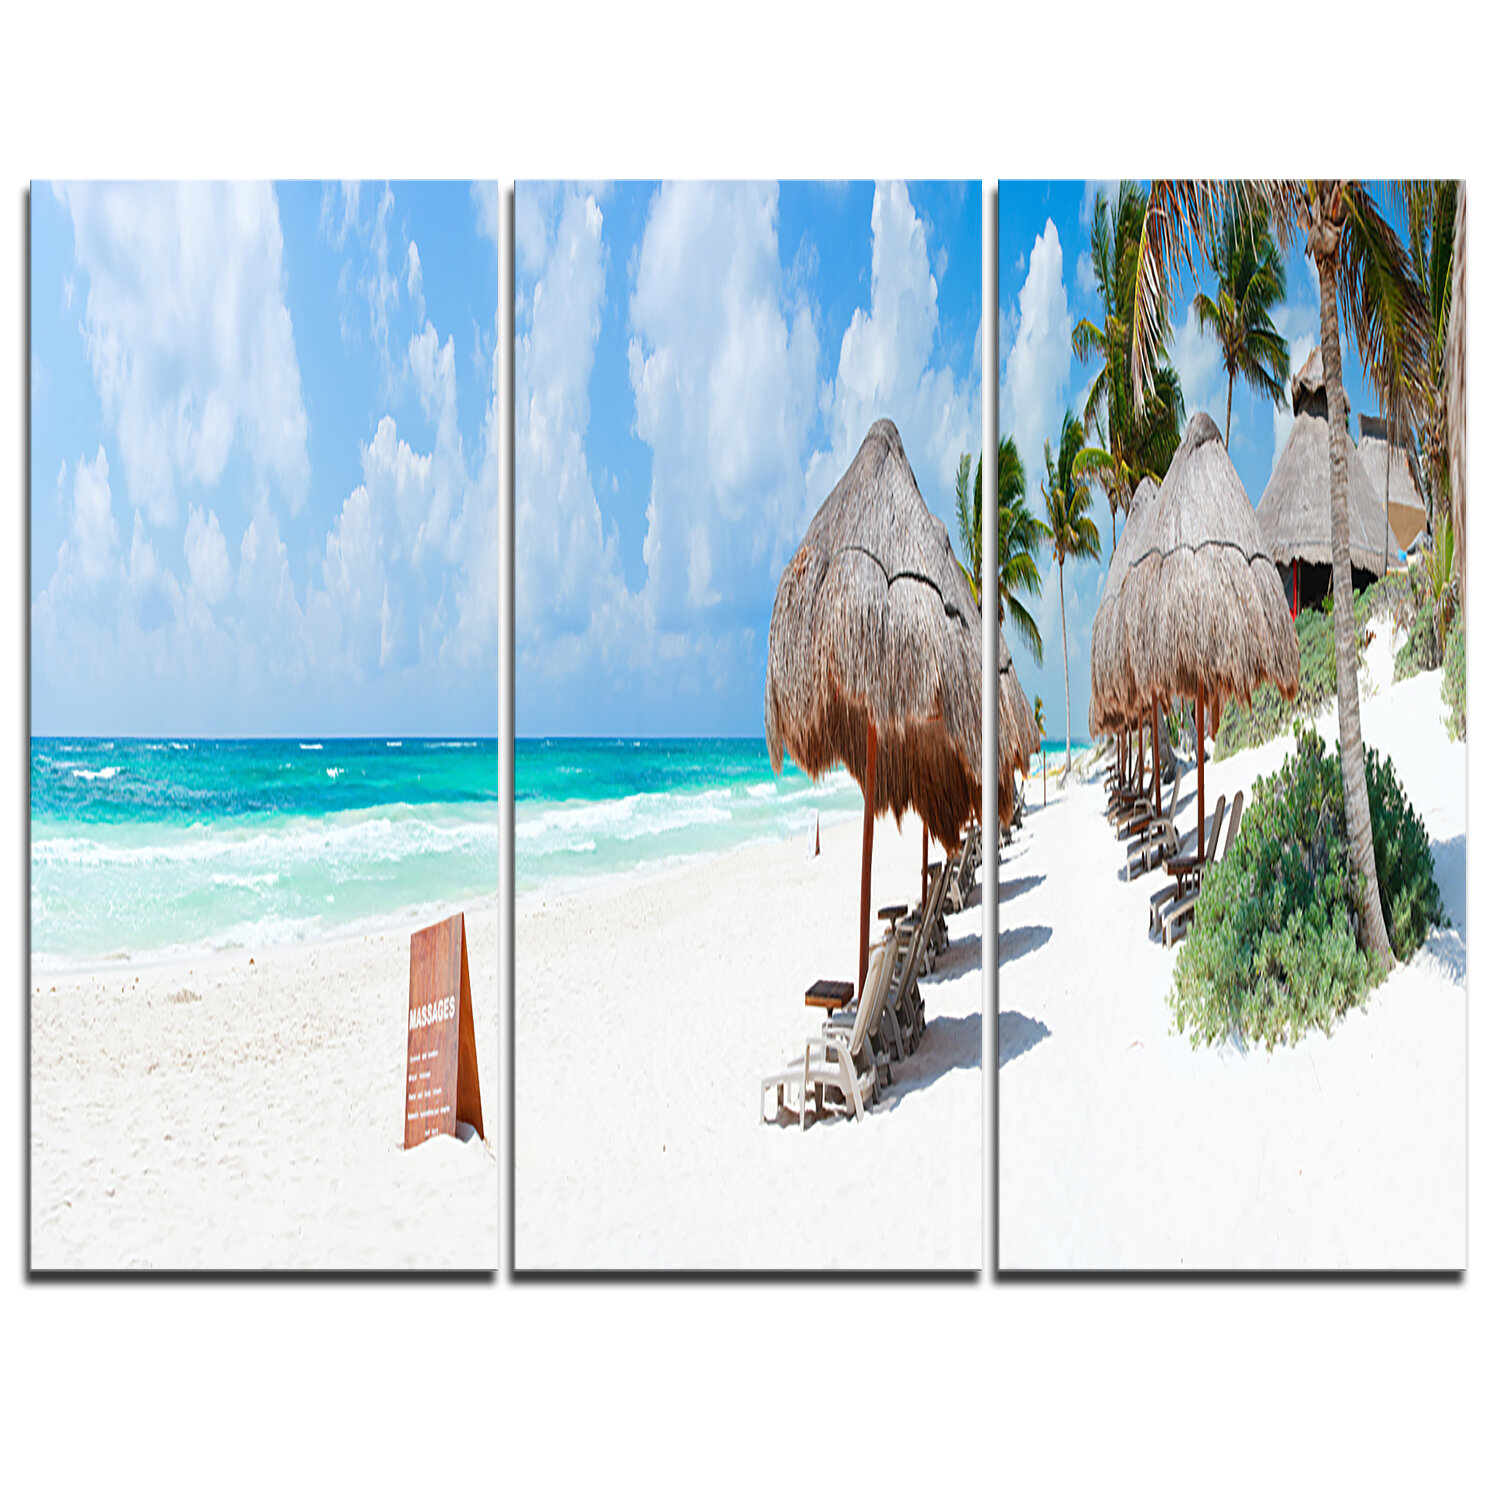 Designart Caribbean Beach Panorama 3 Piece Graphic Art On Wrapped Canvas Set Wayfair Ca